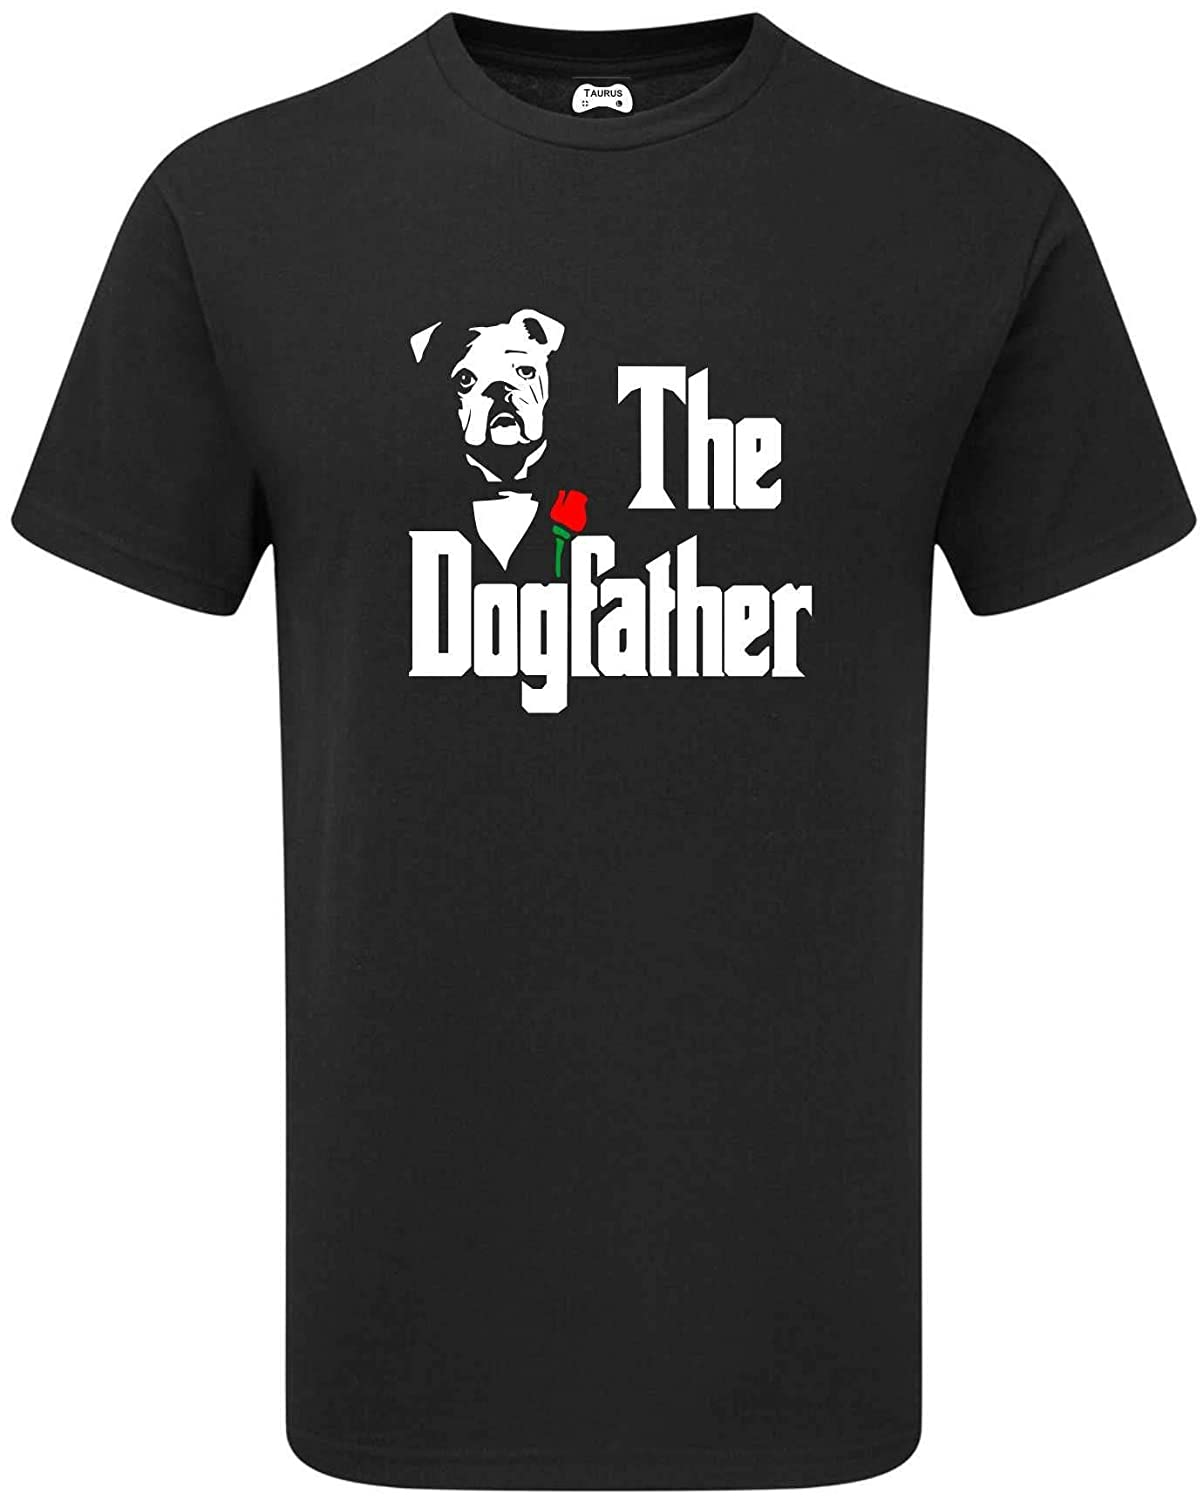 Taurus Clothing The Dogfather film parody funny joke T SHIRT fathers day gift BG212